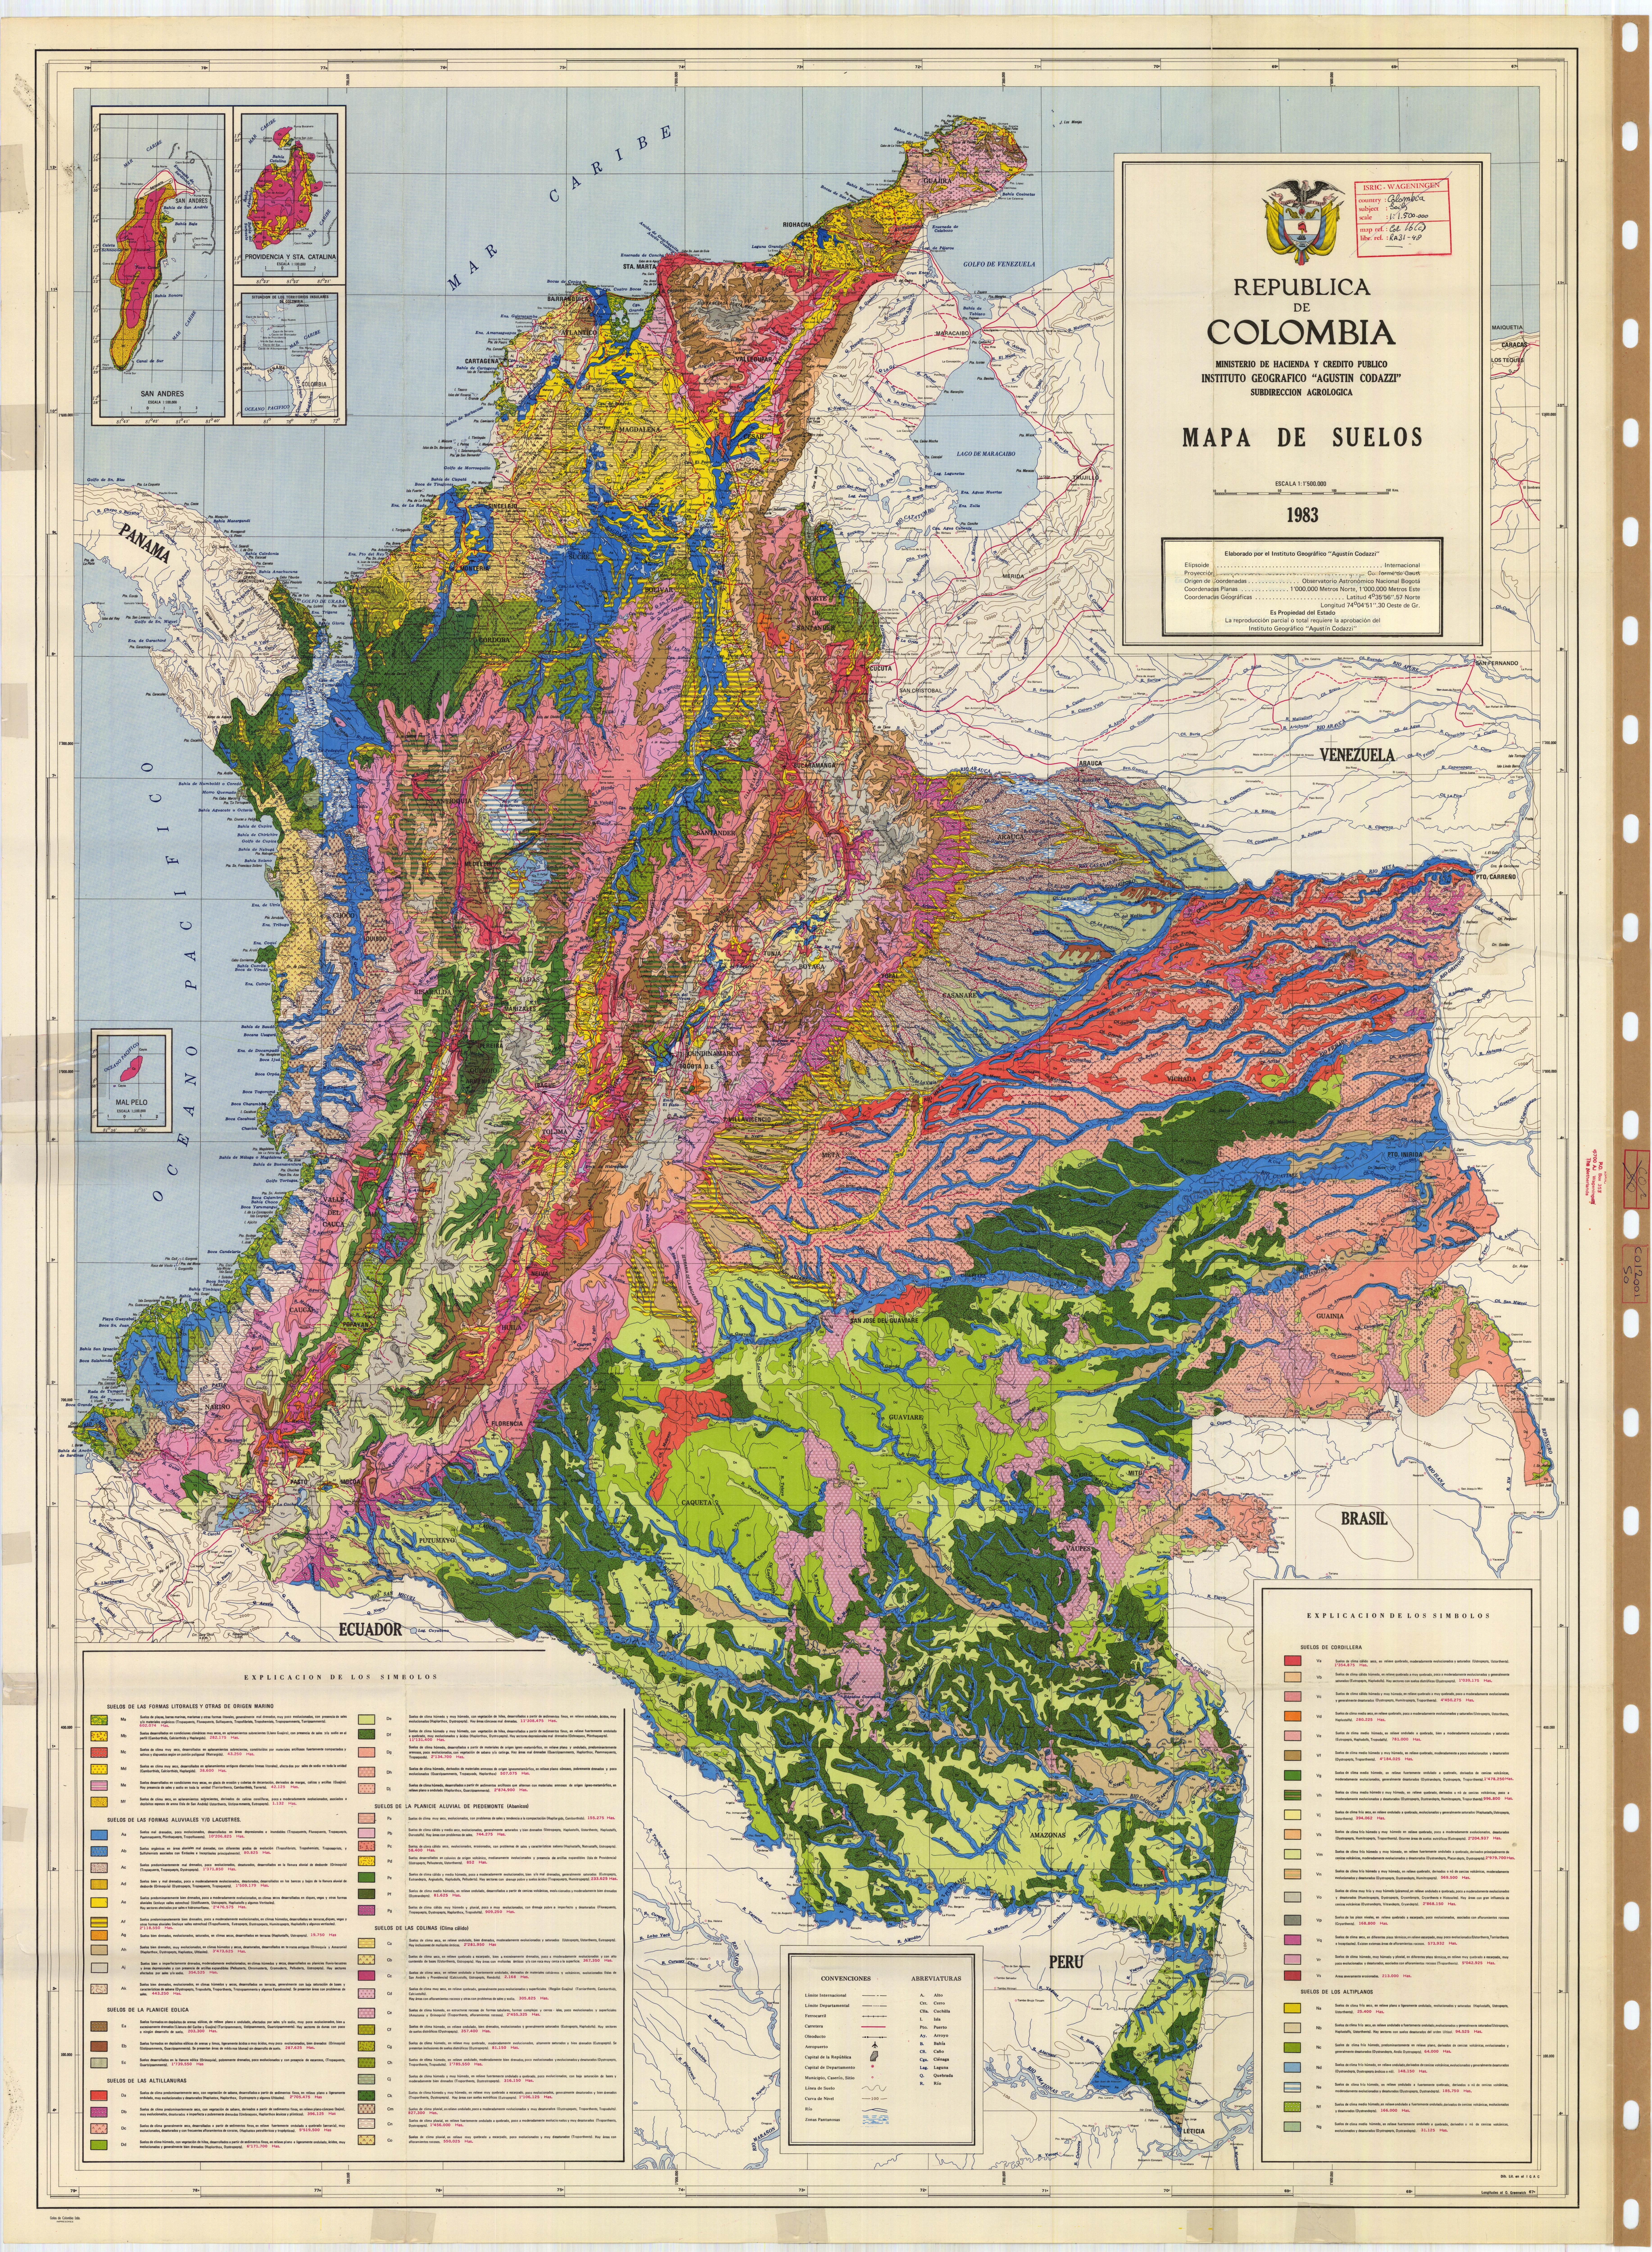 Republica de Colombia. Mapa de Suelos. [soil Map] - ESDAC ... on map with capital of colombia, colored map of colombia, street map of medellin colombia, satellite maps colombia, map of colombia departments, political map of colombia, major river map of colombia, map of colombia small, detailed map of colombia, palace of justice colombia, map colombia only, map of colombia and united states, map of colombia with cities, lost city trek colombia, bogota colombia, map of colombia south america, 3d map of colombia, maap s colombia, map of colombia and surrounding countries, map of el bordo colombia,